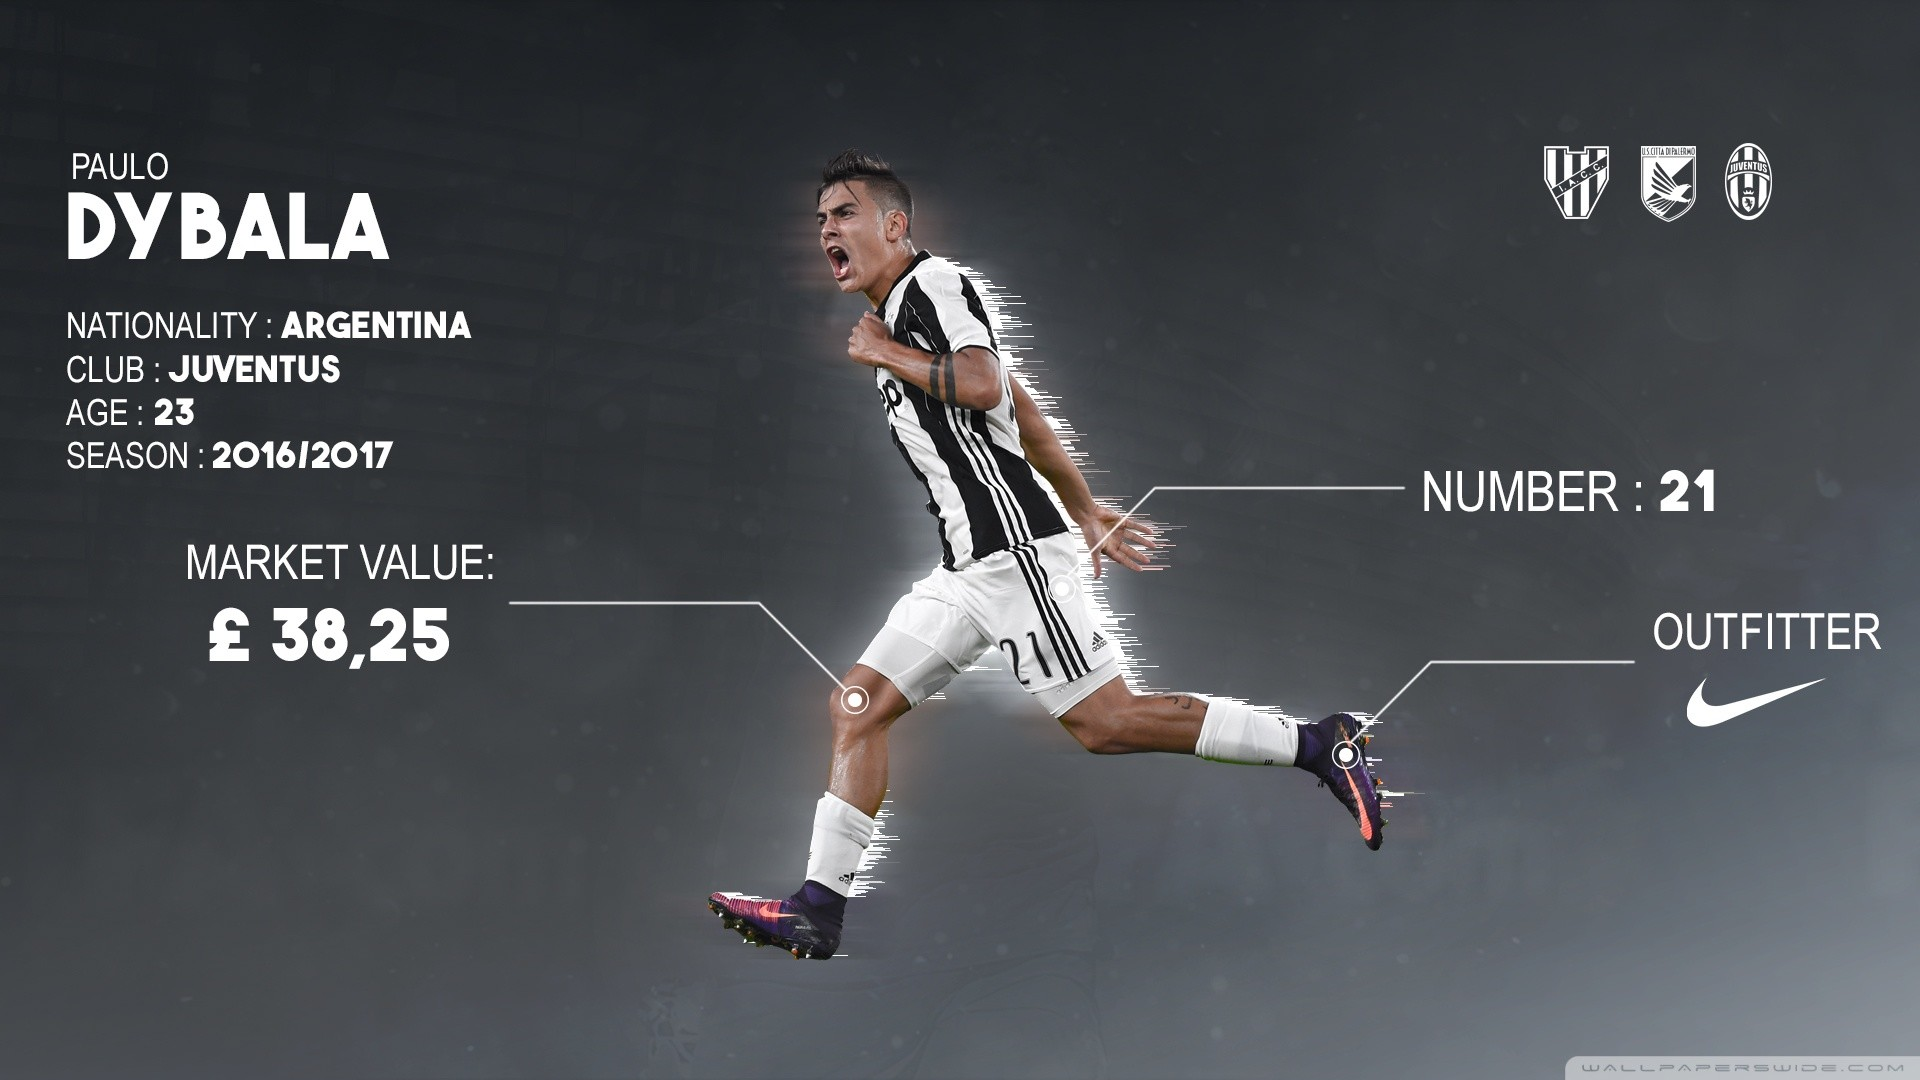 Paulo Dybala Wallpapers 78 Images